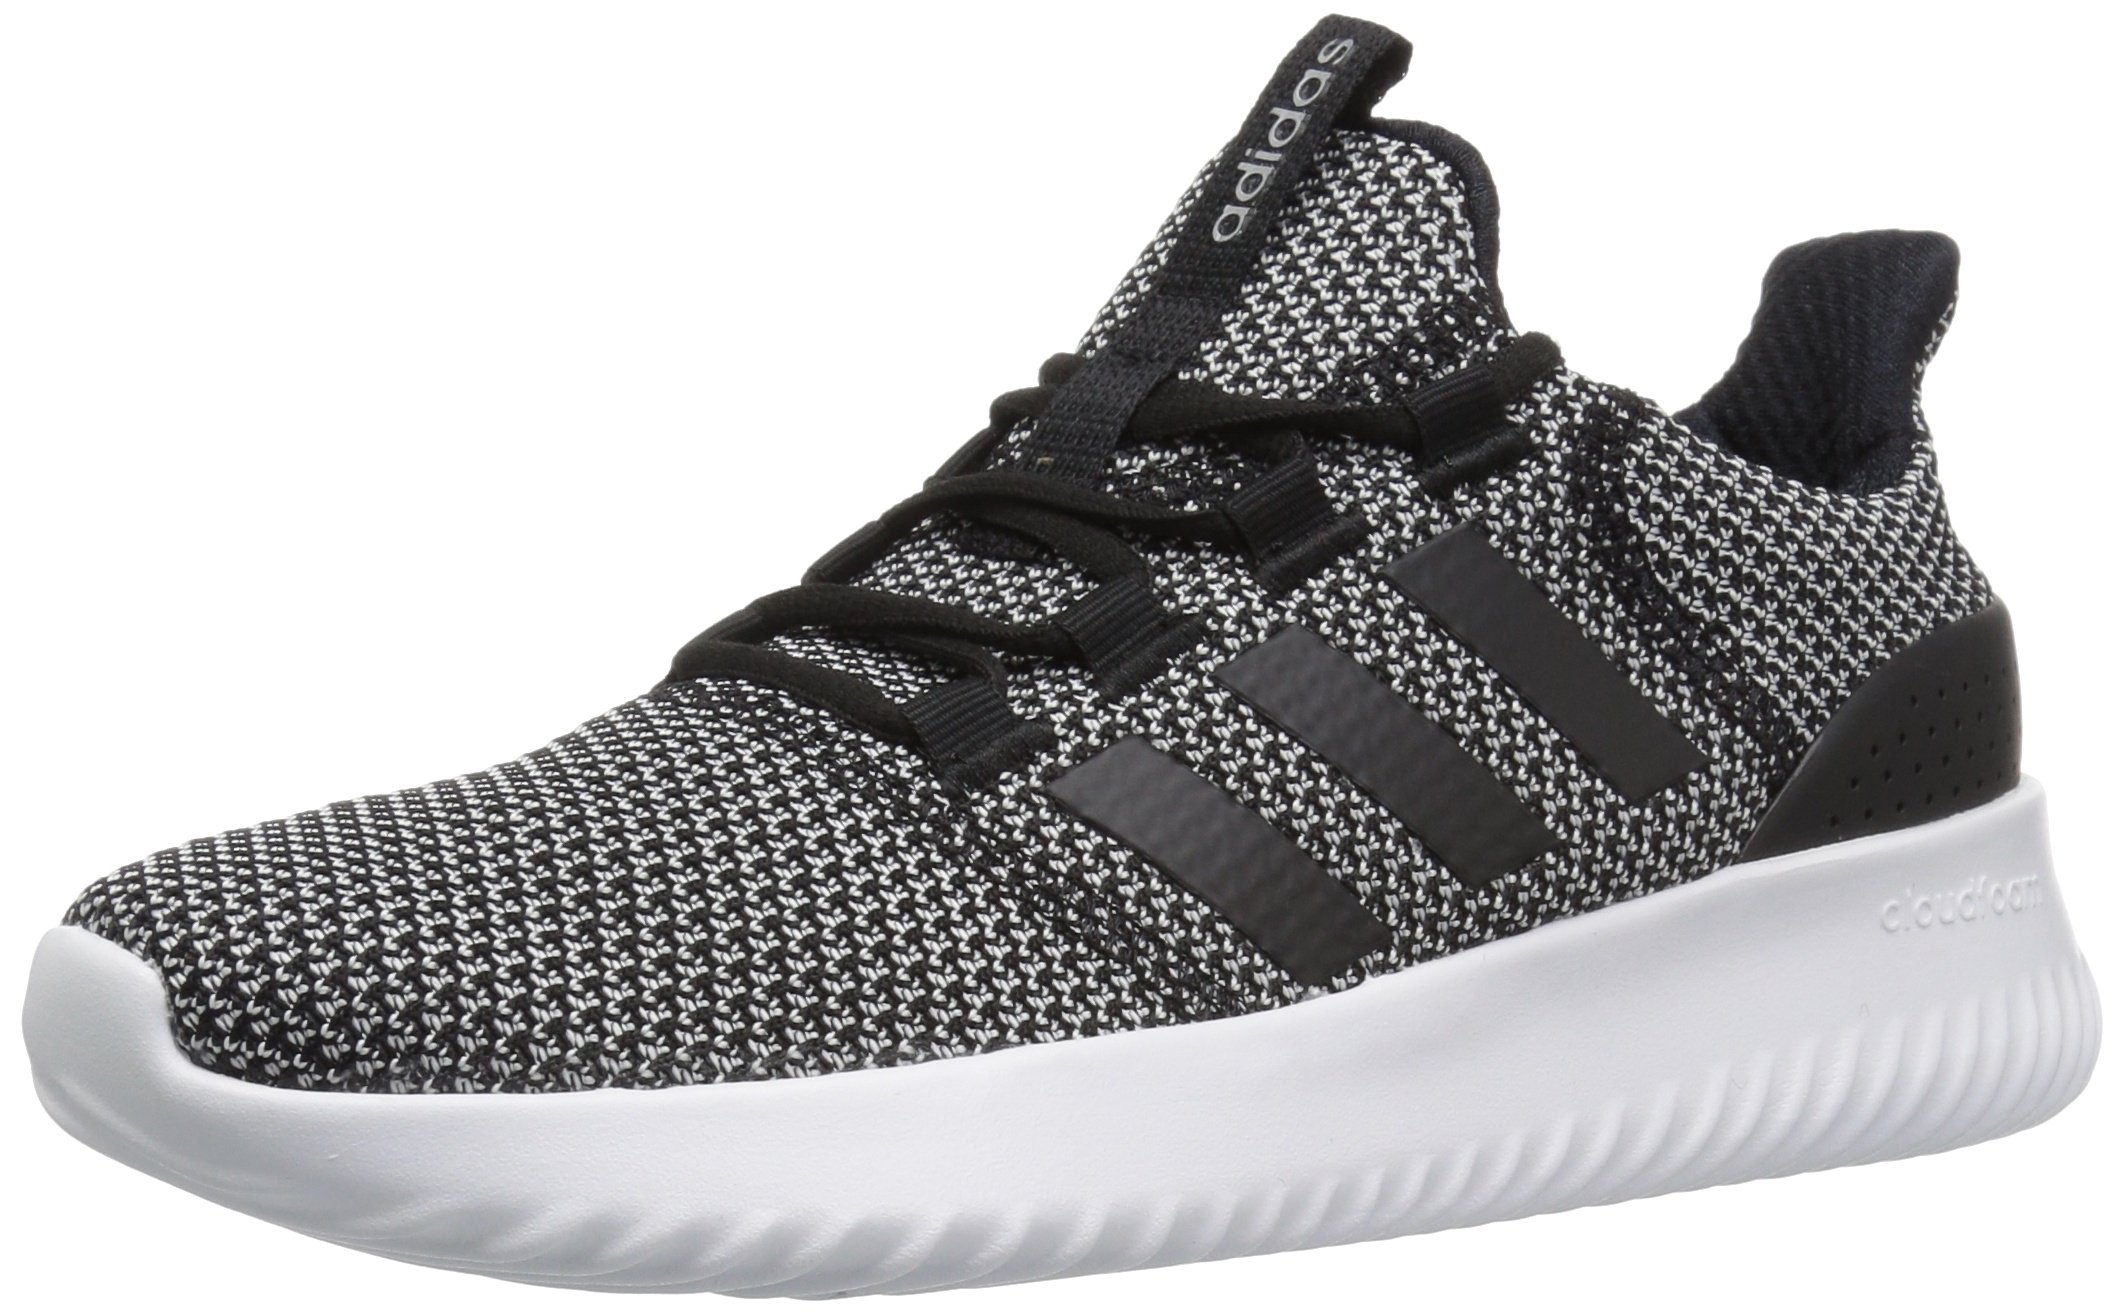 adidas NEO Women's Cloudfoam Ultimate W Sneaker,Black/Black/White,7 Medium US